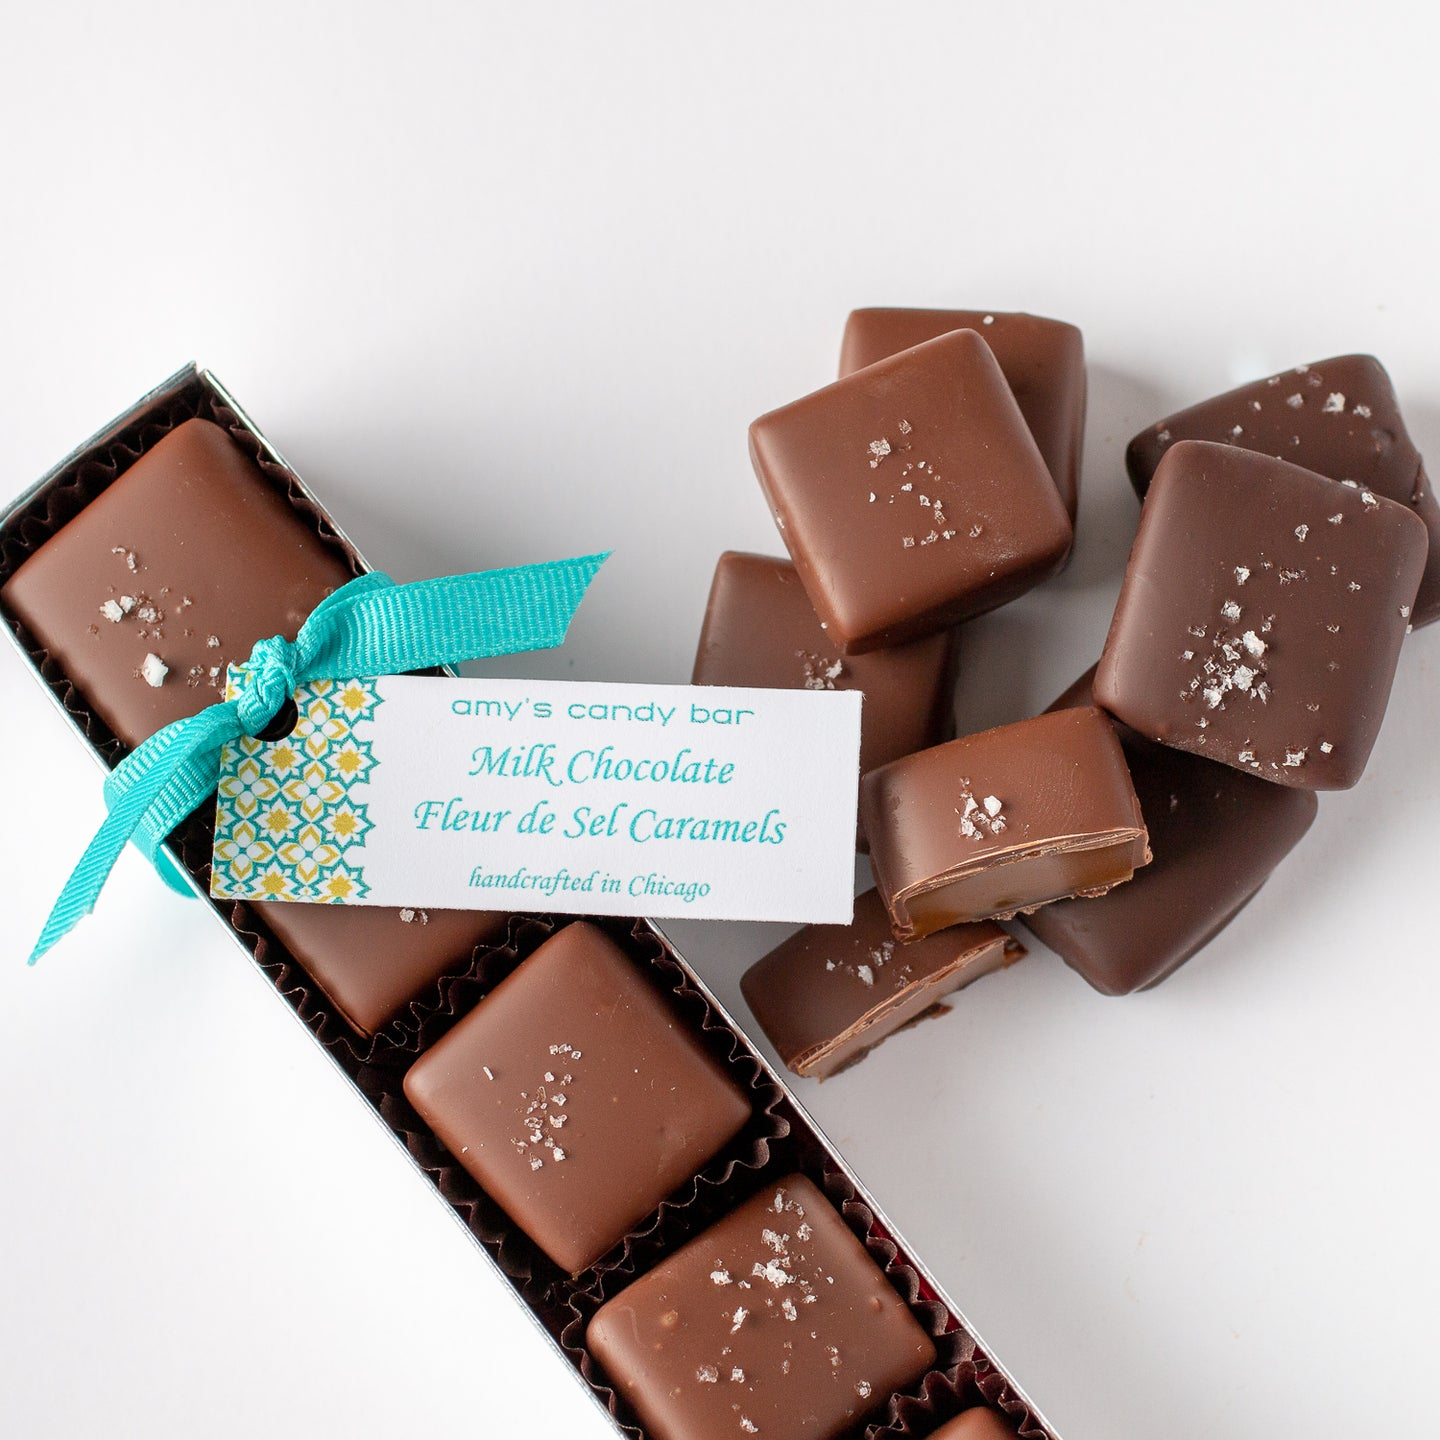 Milk and Dark Chocolate Fleur de Sel Caramels Amy's Candy Bar Chicago